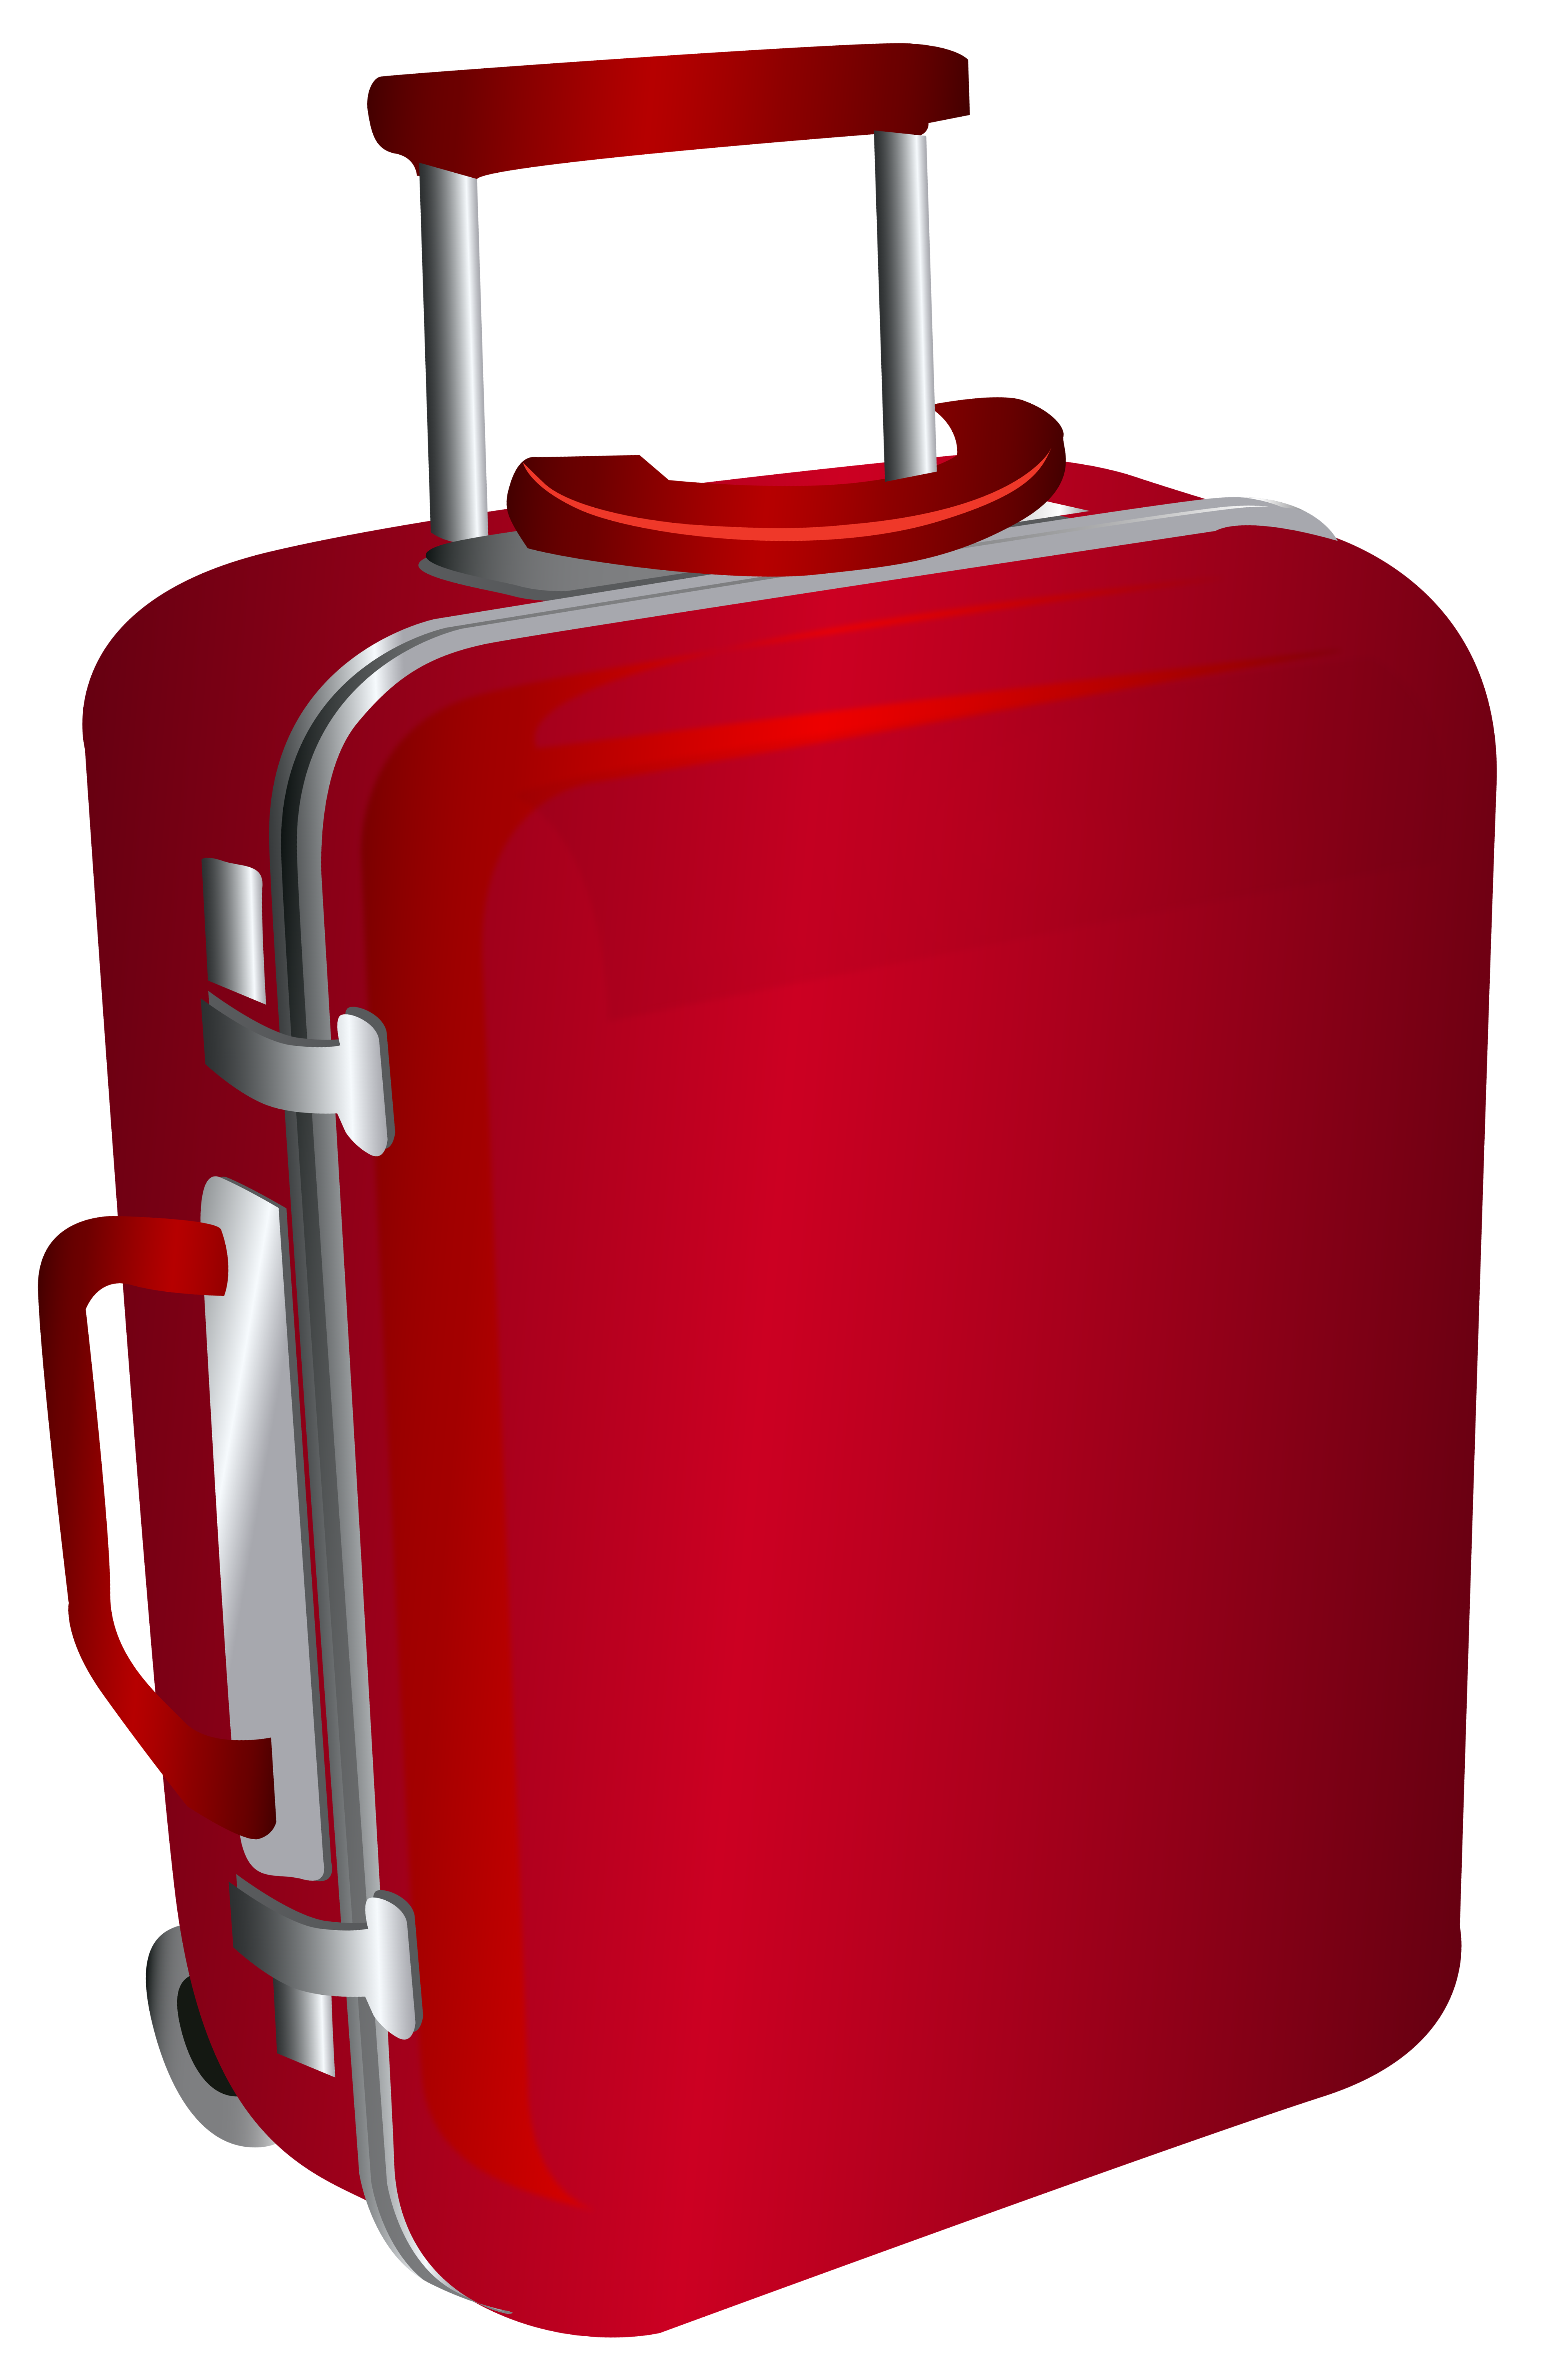 red trolley travel bag png clipart image #21071